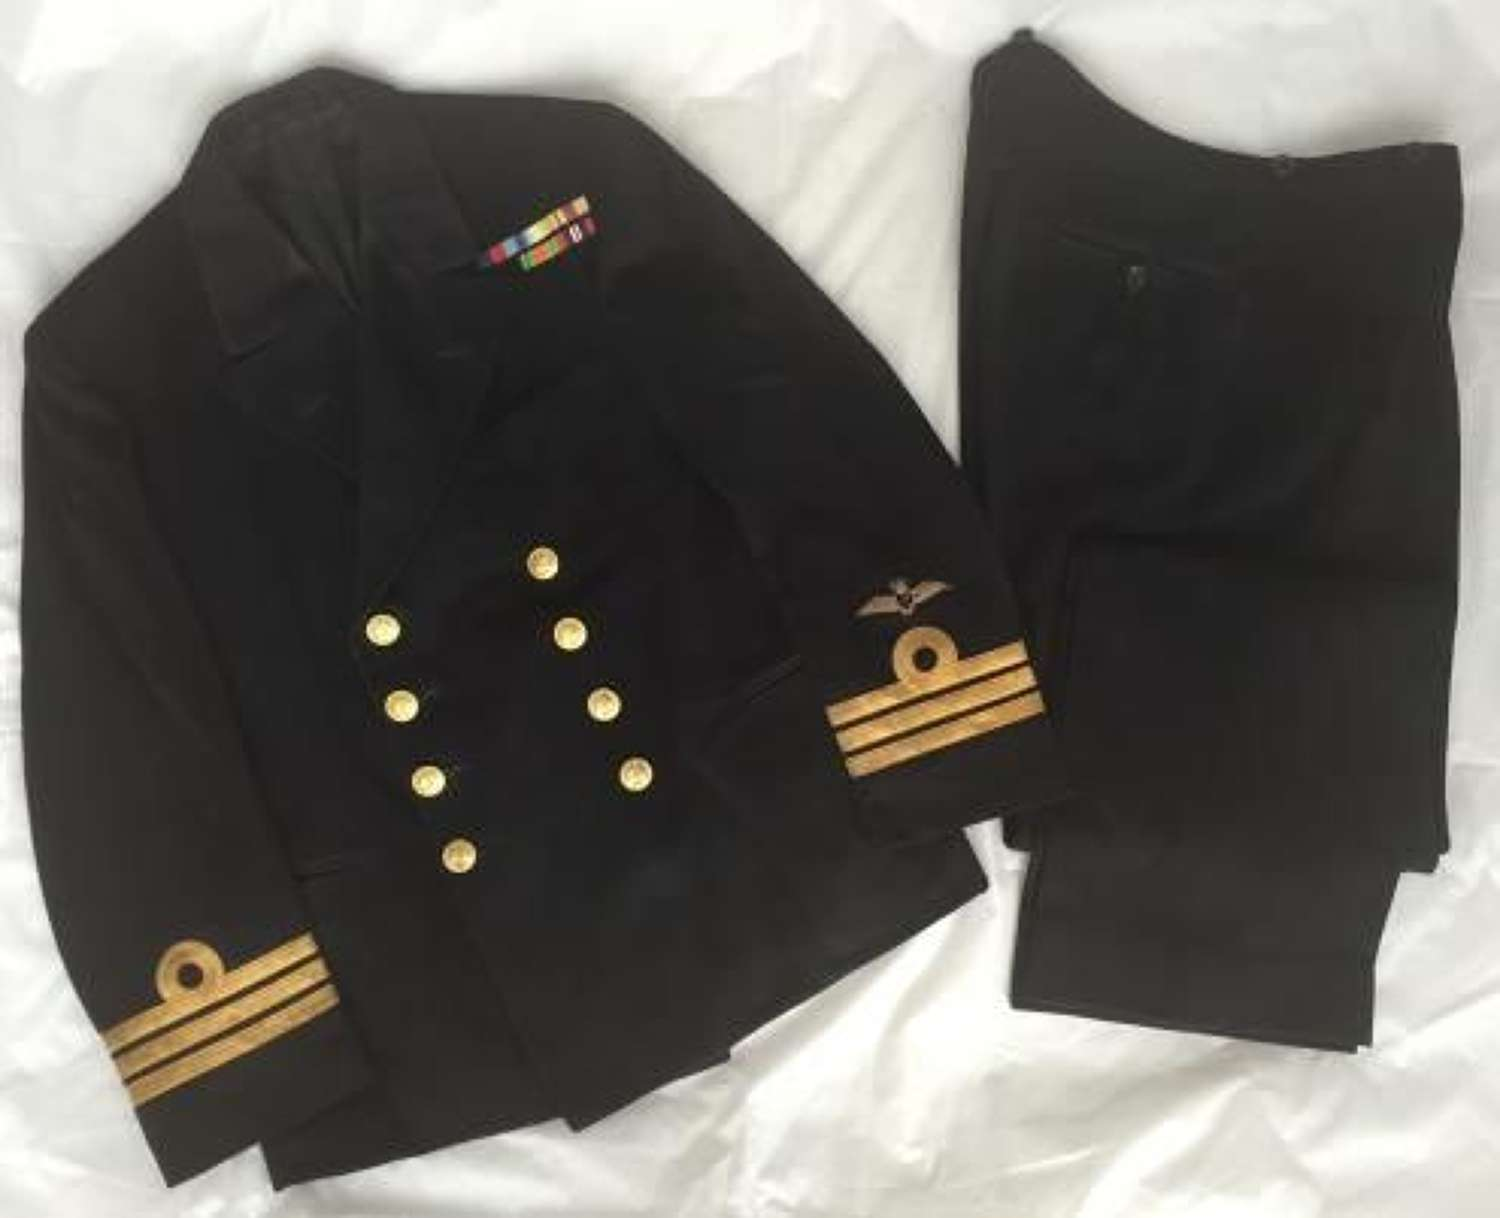 1943 dated Fleet Air Arm Swordfish Pilots tunic and trousers names to Cdr A. C. R. Duvall